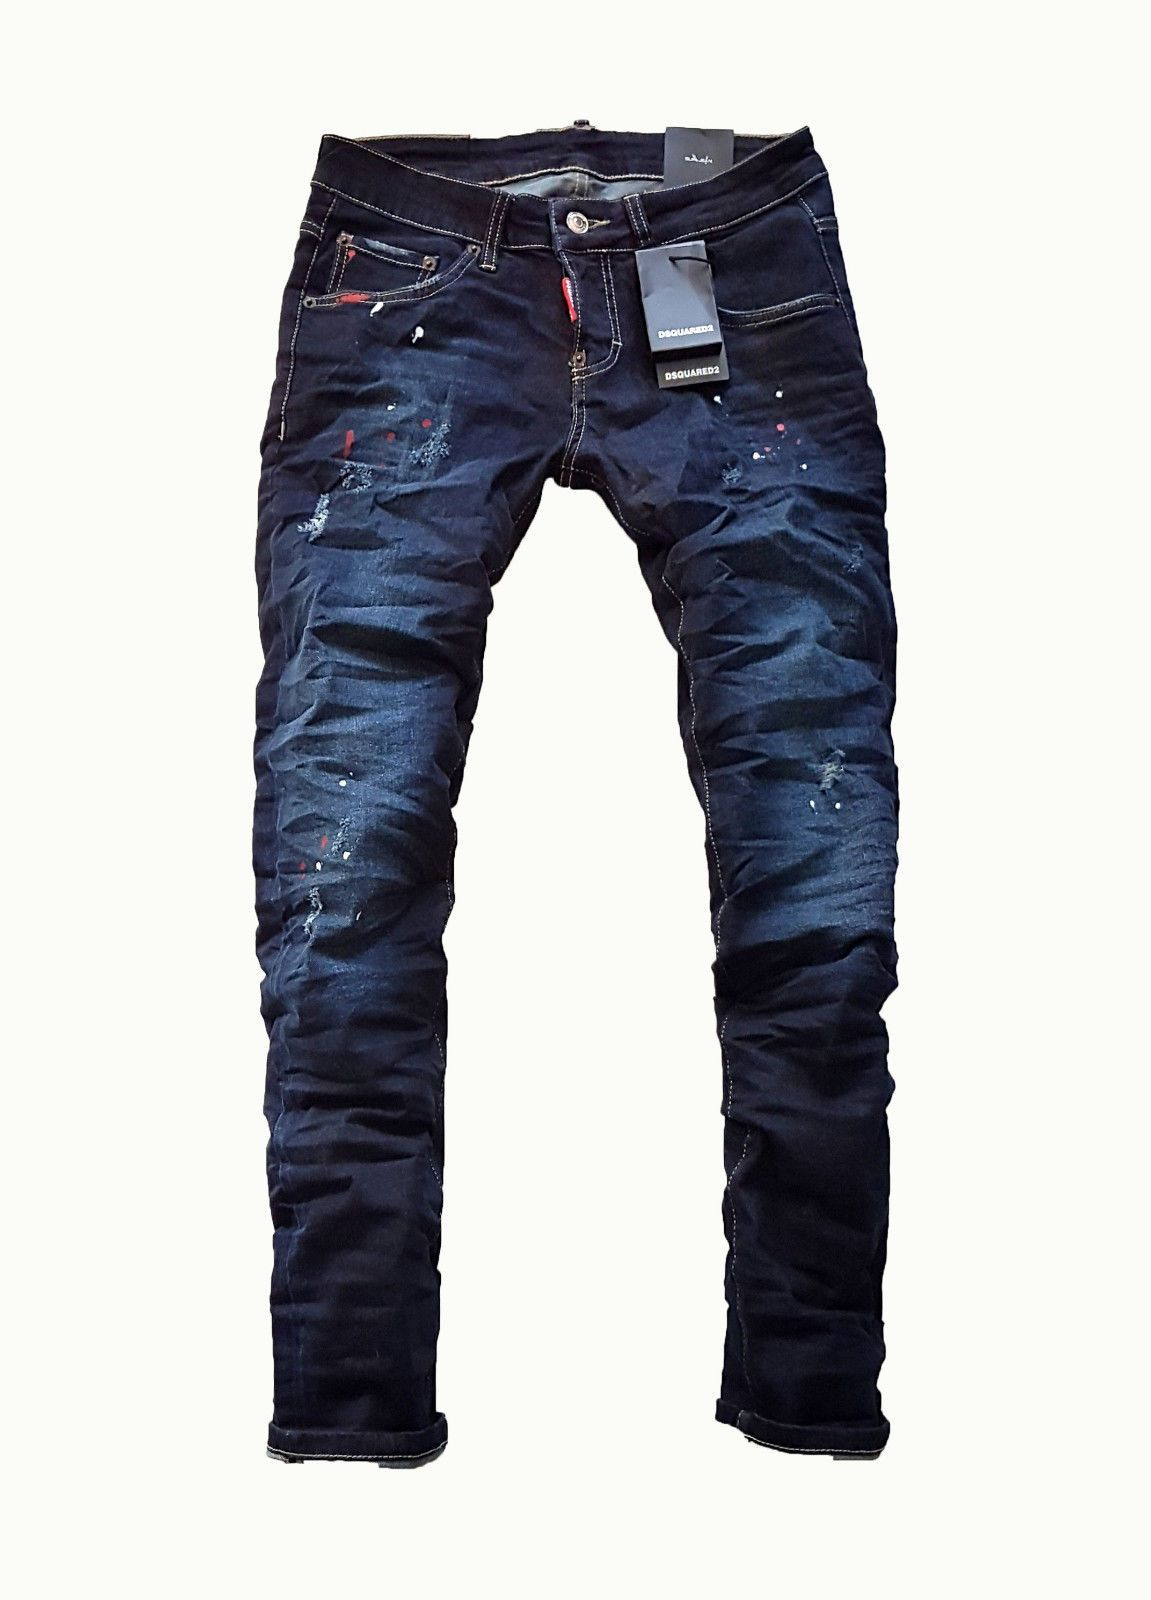 0a37e9d9f1e724 BRAND DSQ2 JEANS DSQUARED NEW SLIM FIT PAINTED RED BLUE MEN S BOY S JEAN  TAGS buy now